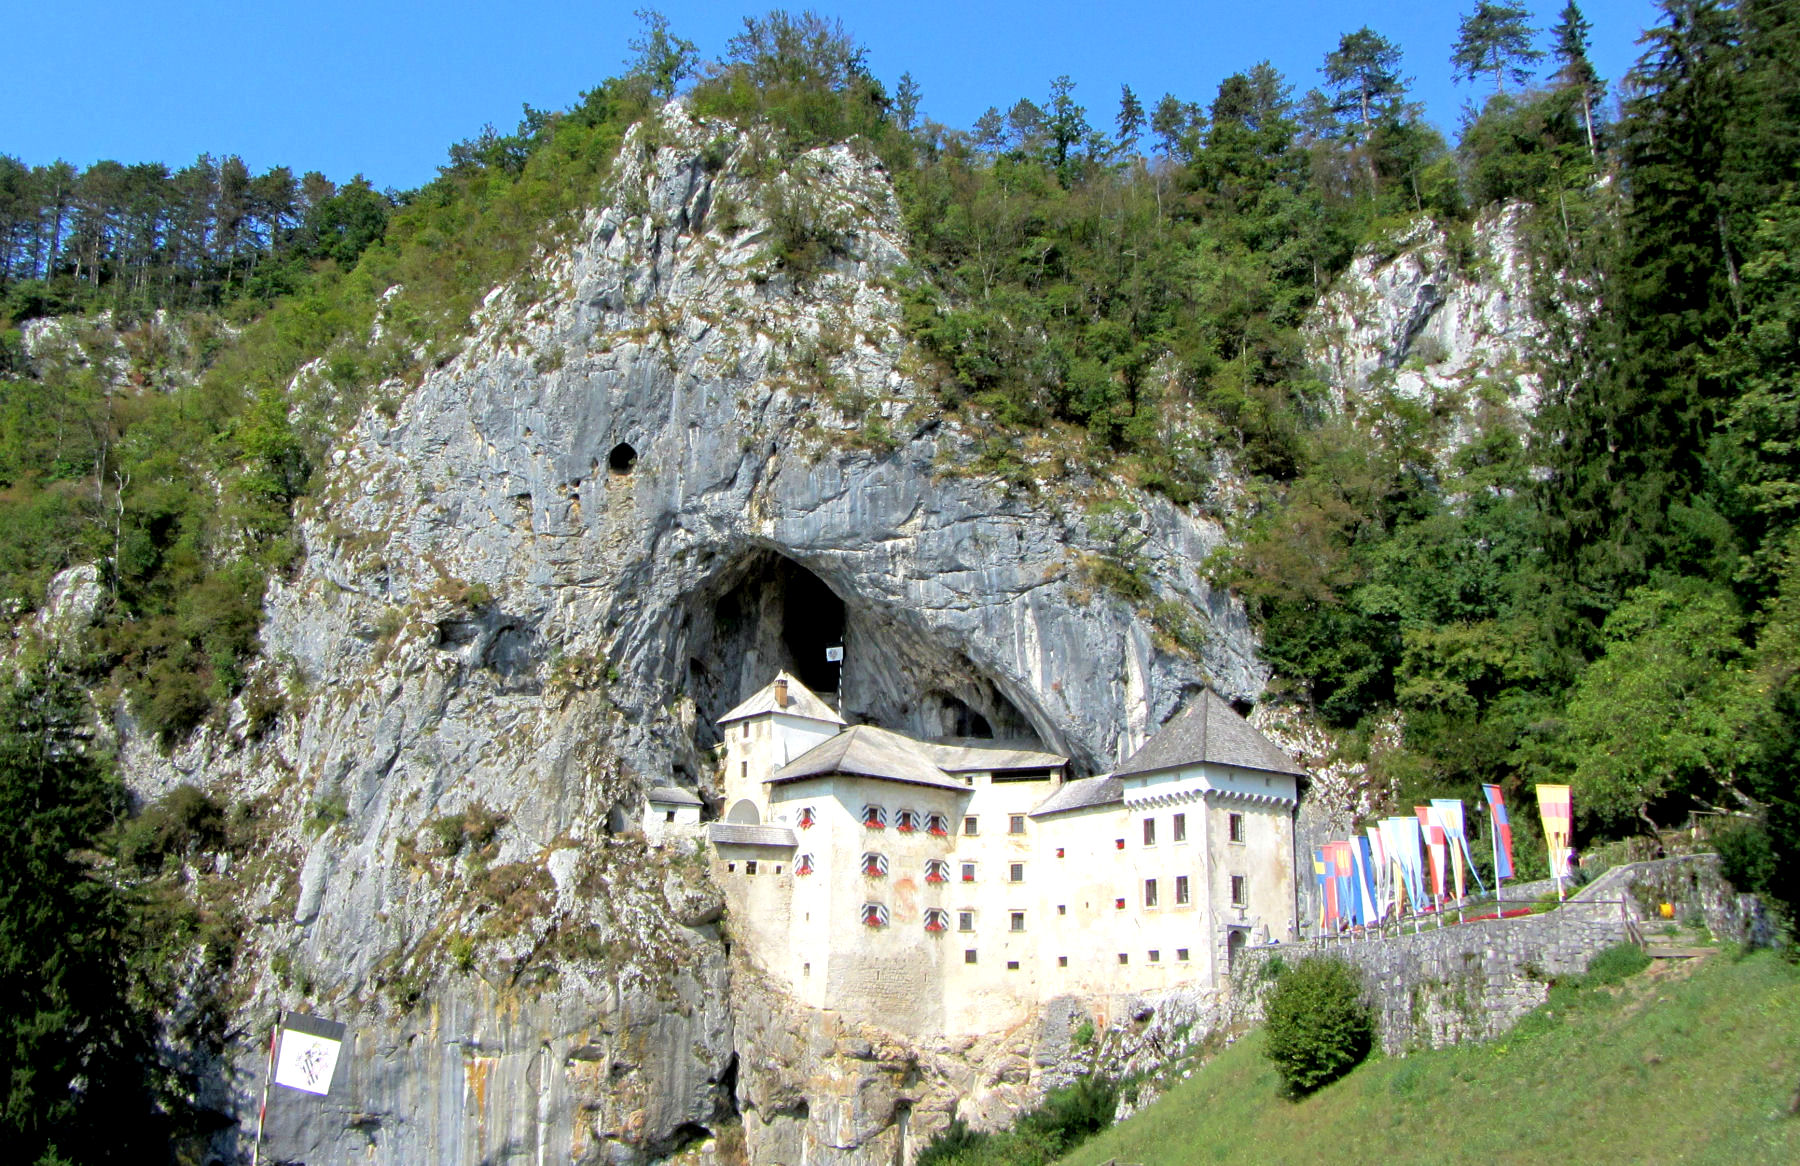 Predjama Castle in Slovenia is built into the mouth of a cave